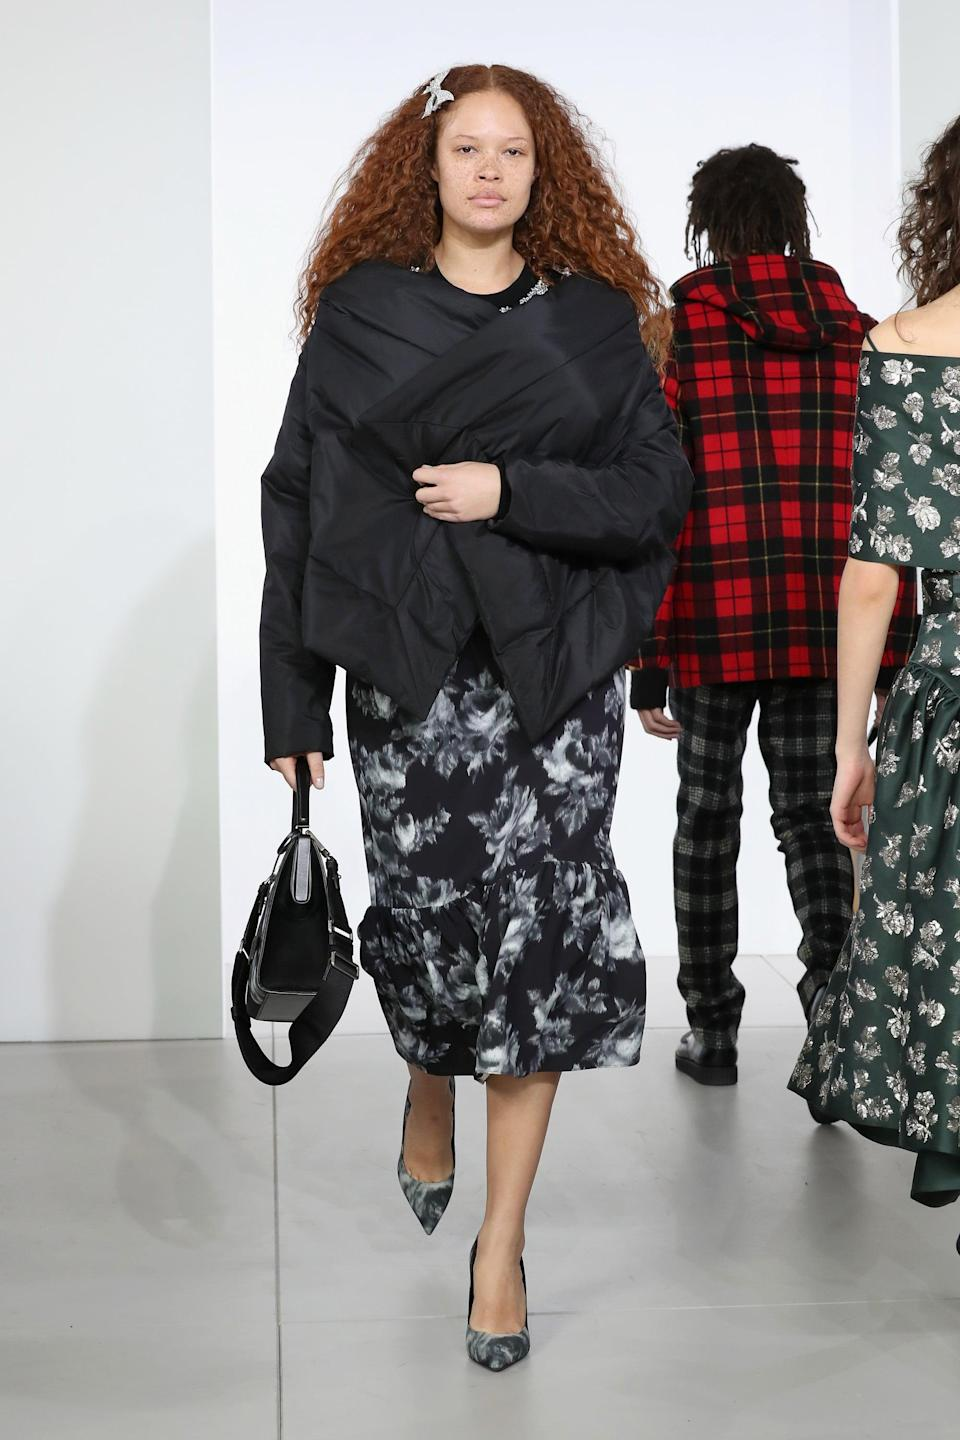 <p>Instagram sensation and Afro-Swedish model Sabina Karlsson's freckles and wild red hair have caught the eye of Christian Siriano and Michael Kors. Having modeled since she was a child, Karlsson has seen a shift in the industry both for both Black and curve models but remains a strong voice for inclusion and change.</p>